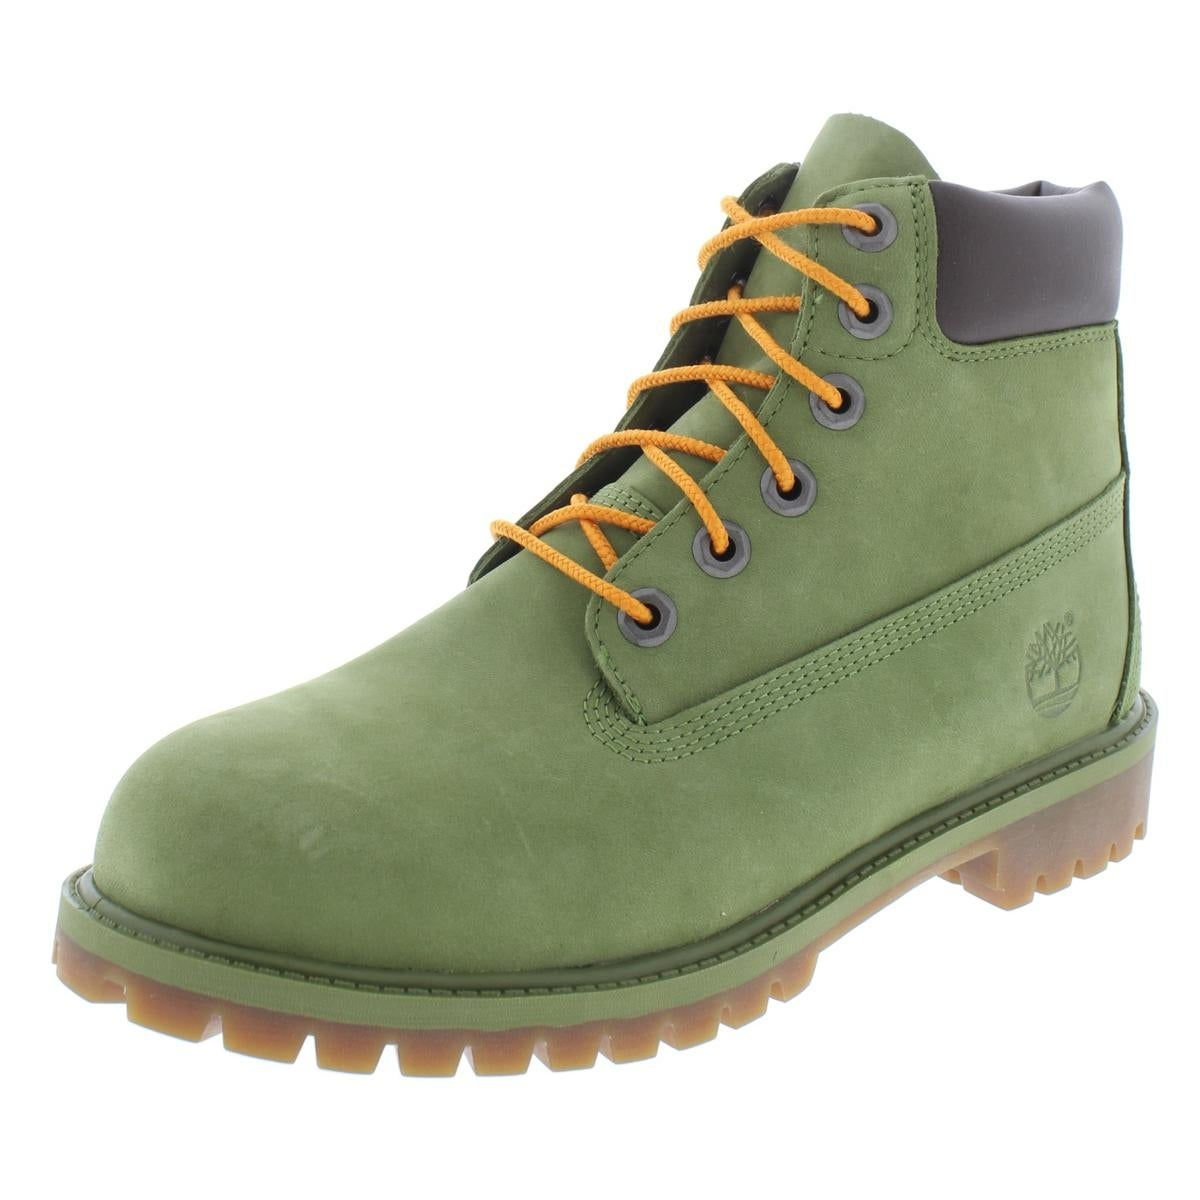 b4e681e90cd Timberland Boys 6in WP Boot Casual Boots Suede Ankle - 6 medium (d) big kid